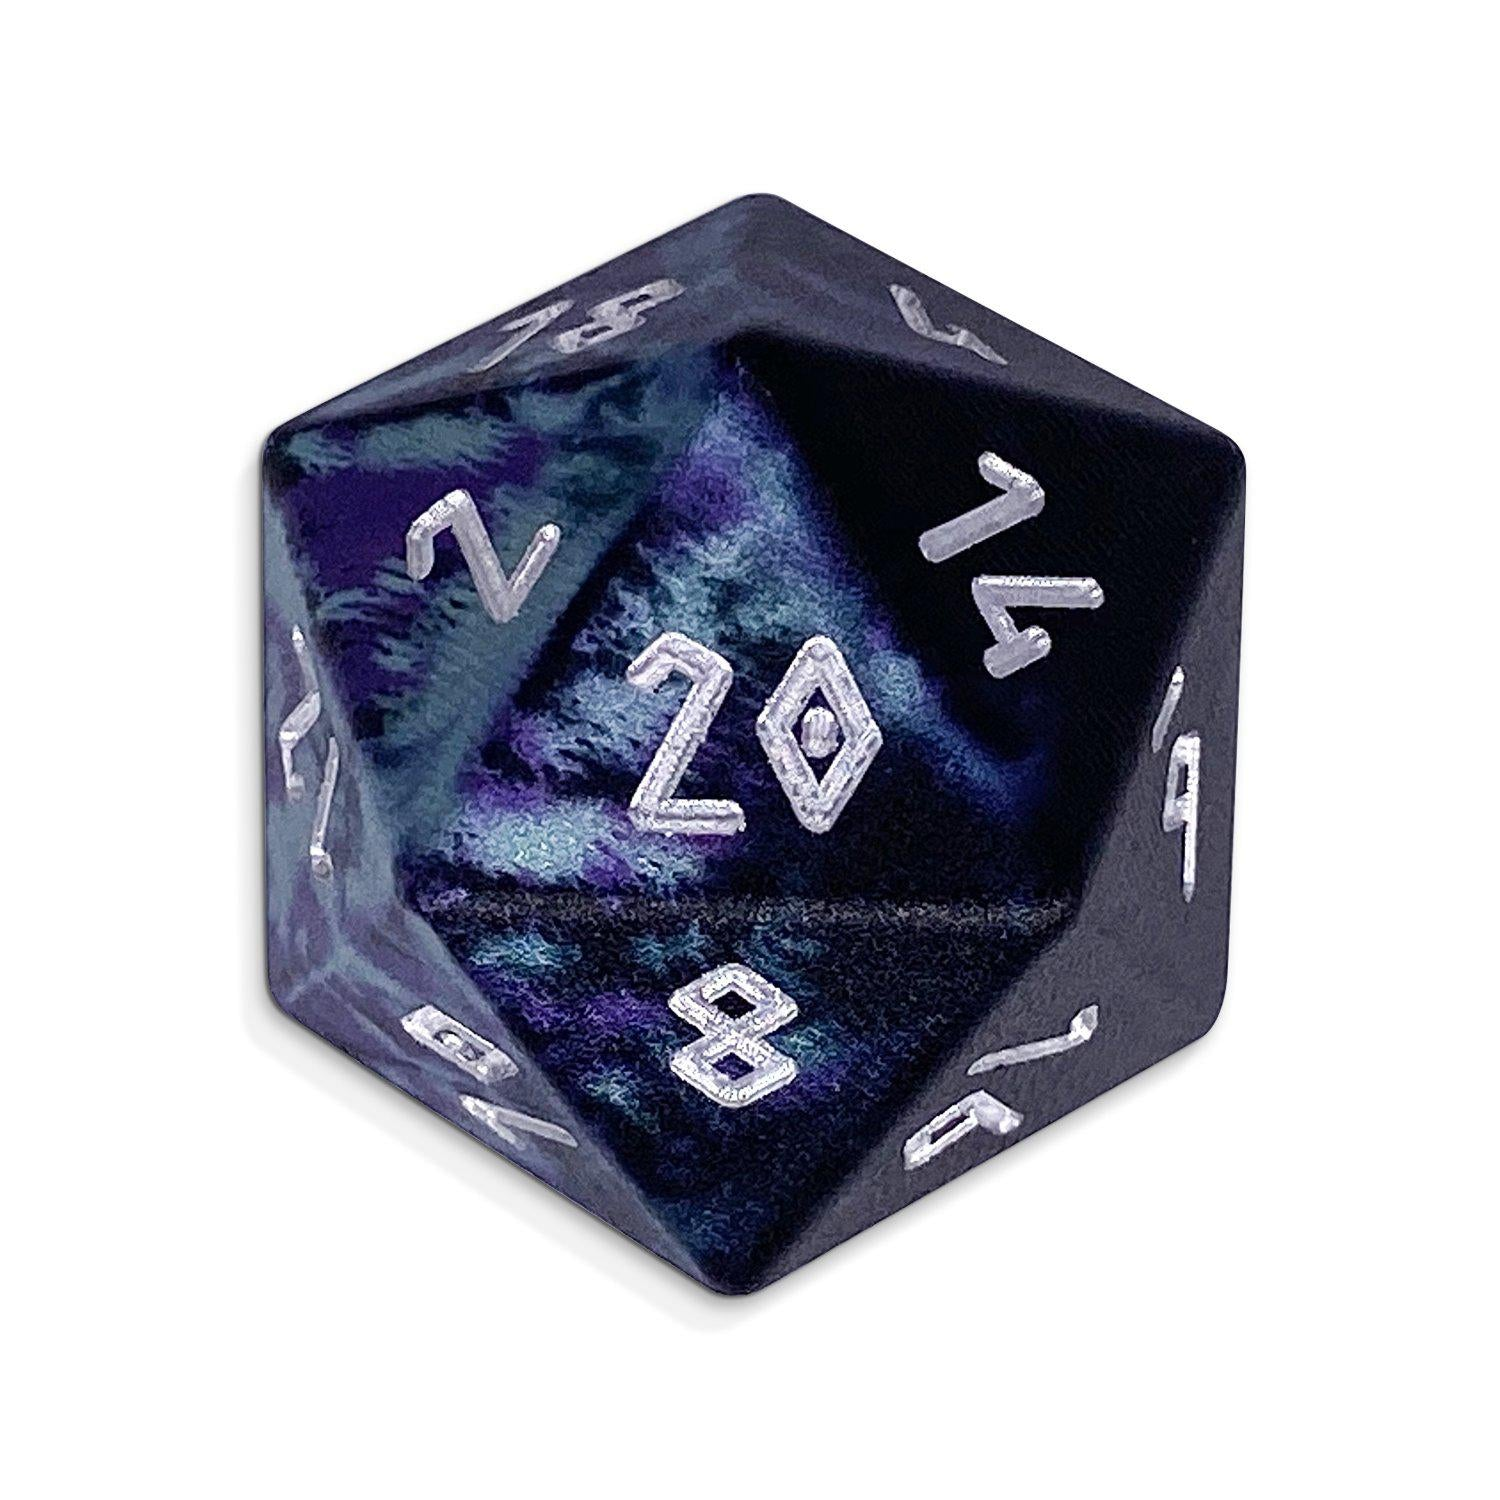 Single Wondrous Dice® D20 in Witches Cauldron by Norse Foundry® 6063 Aircraft Grade Aluminum